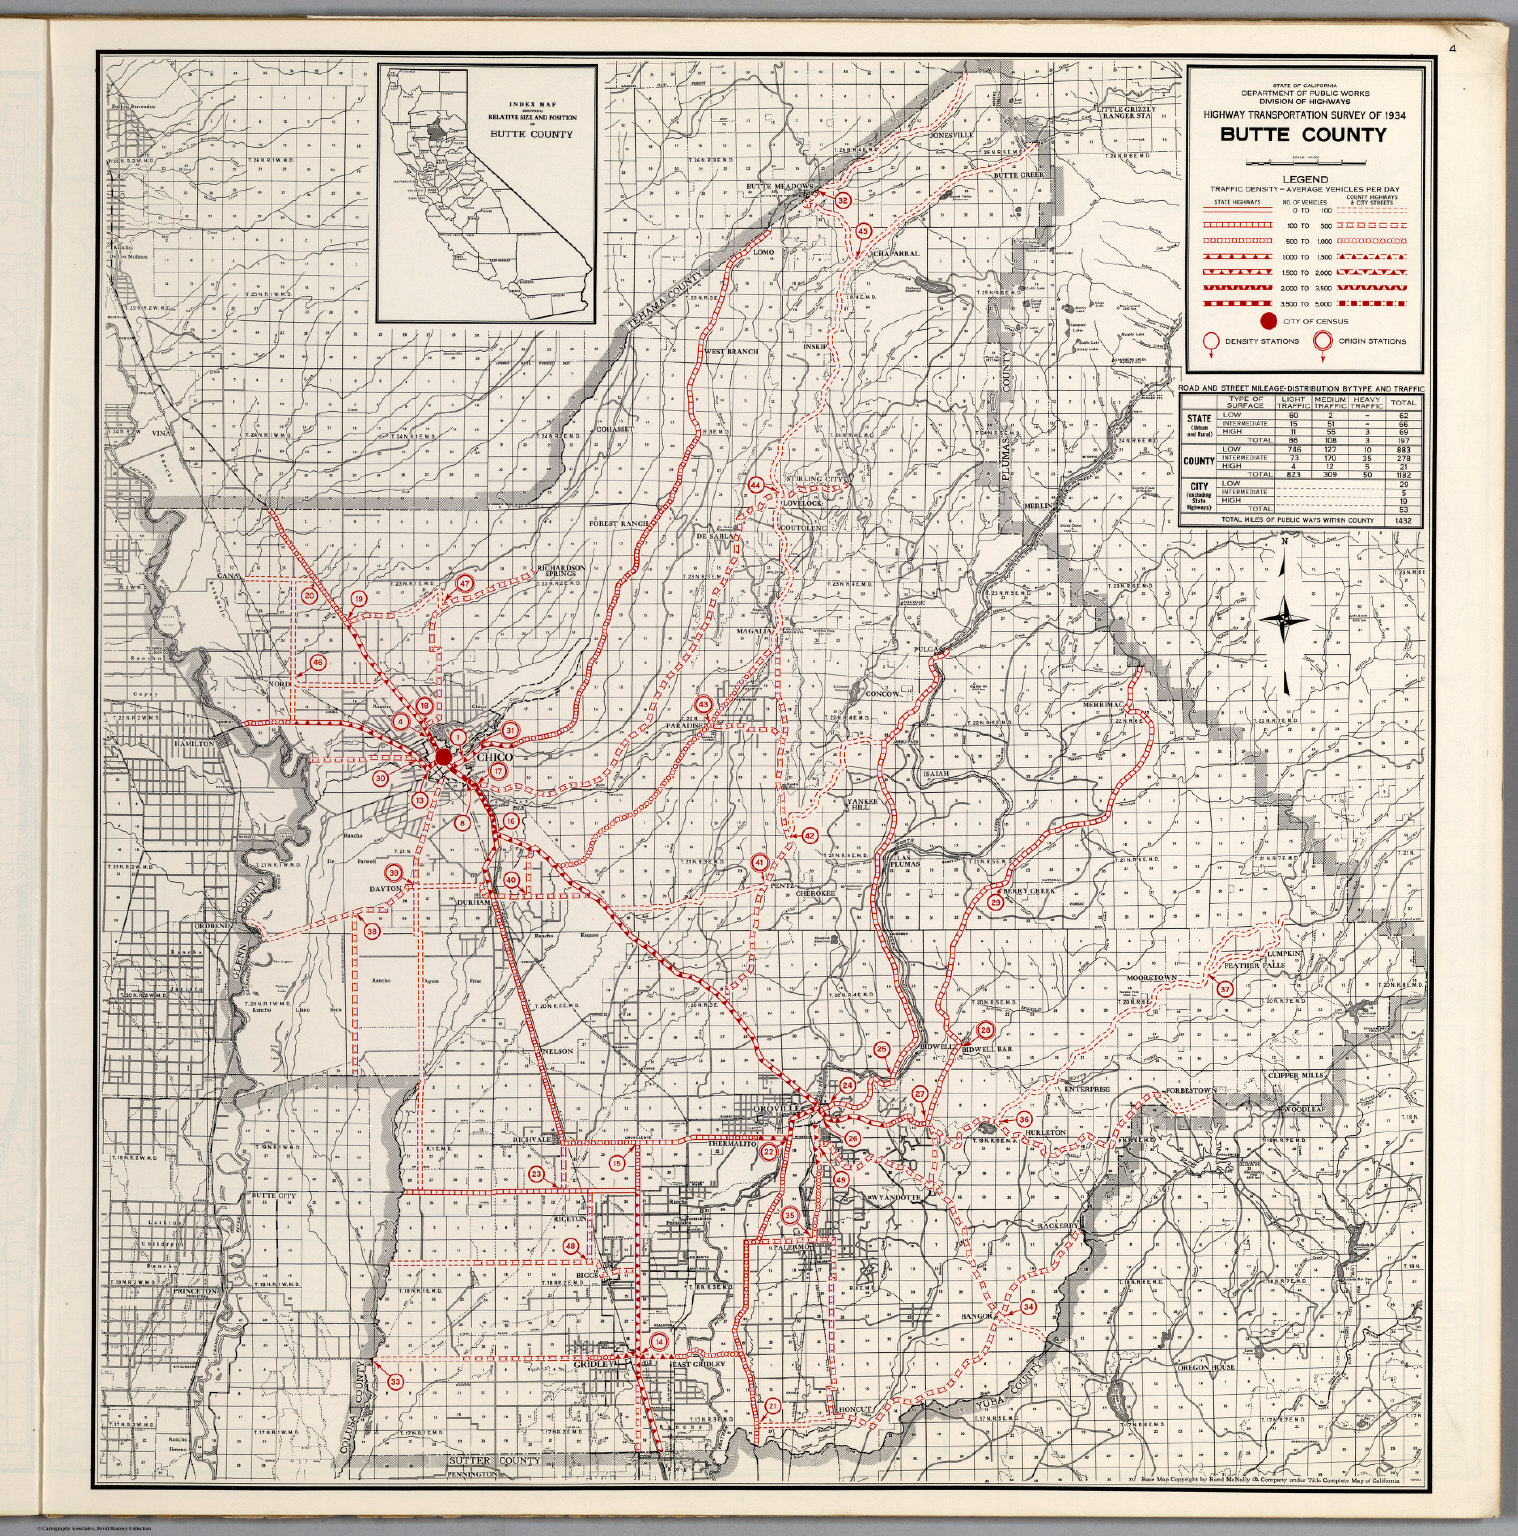 Butte County David Rumsey Historical Map Collection - Butte county map